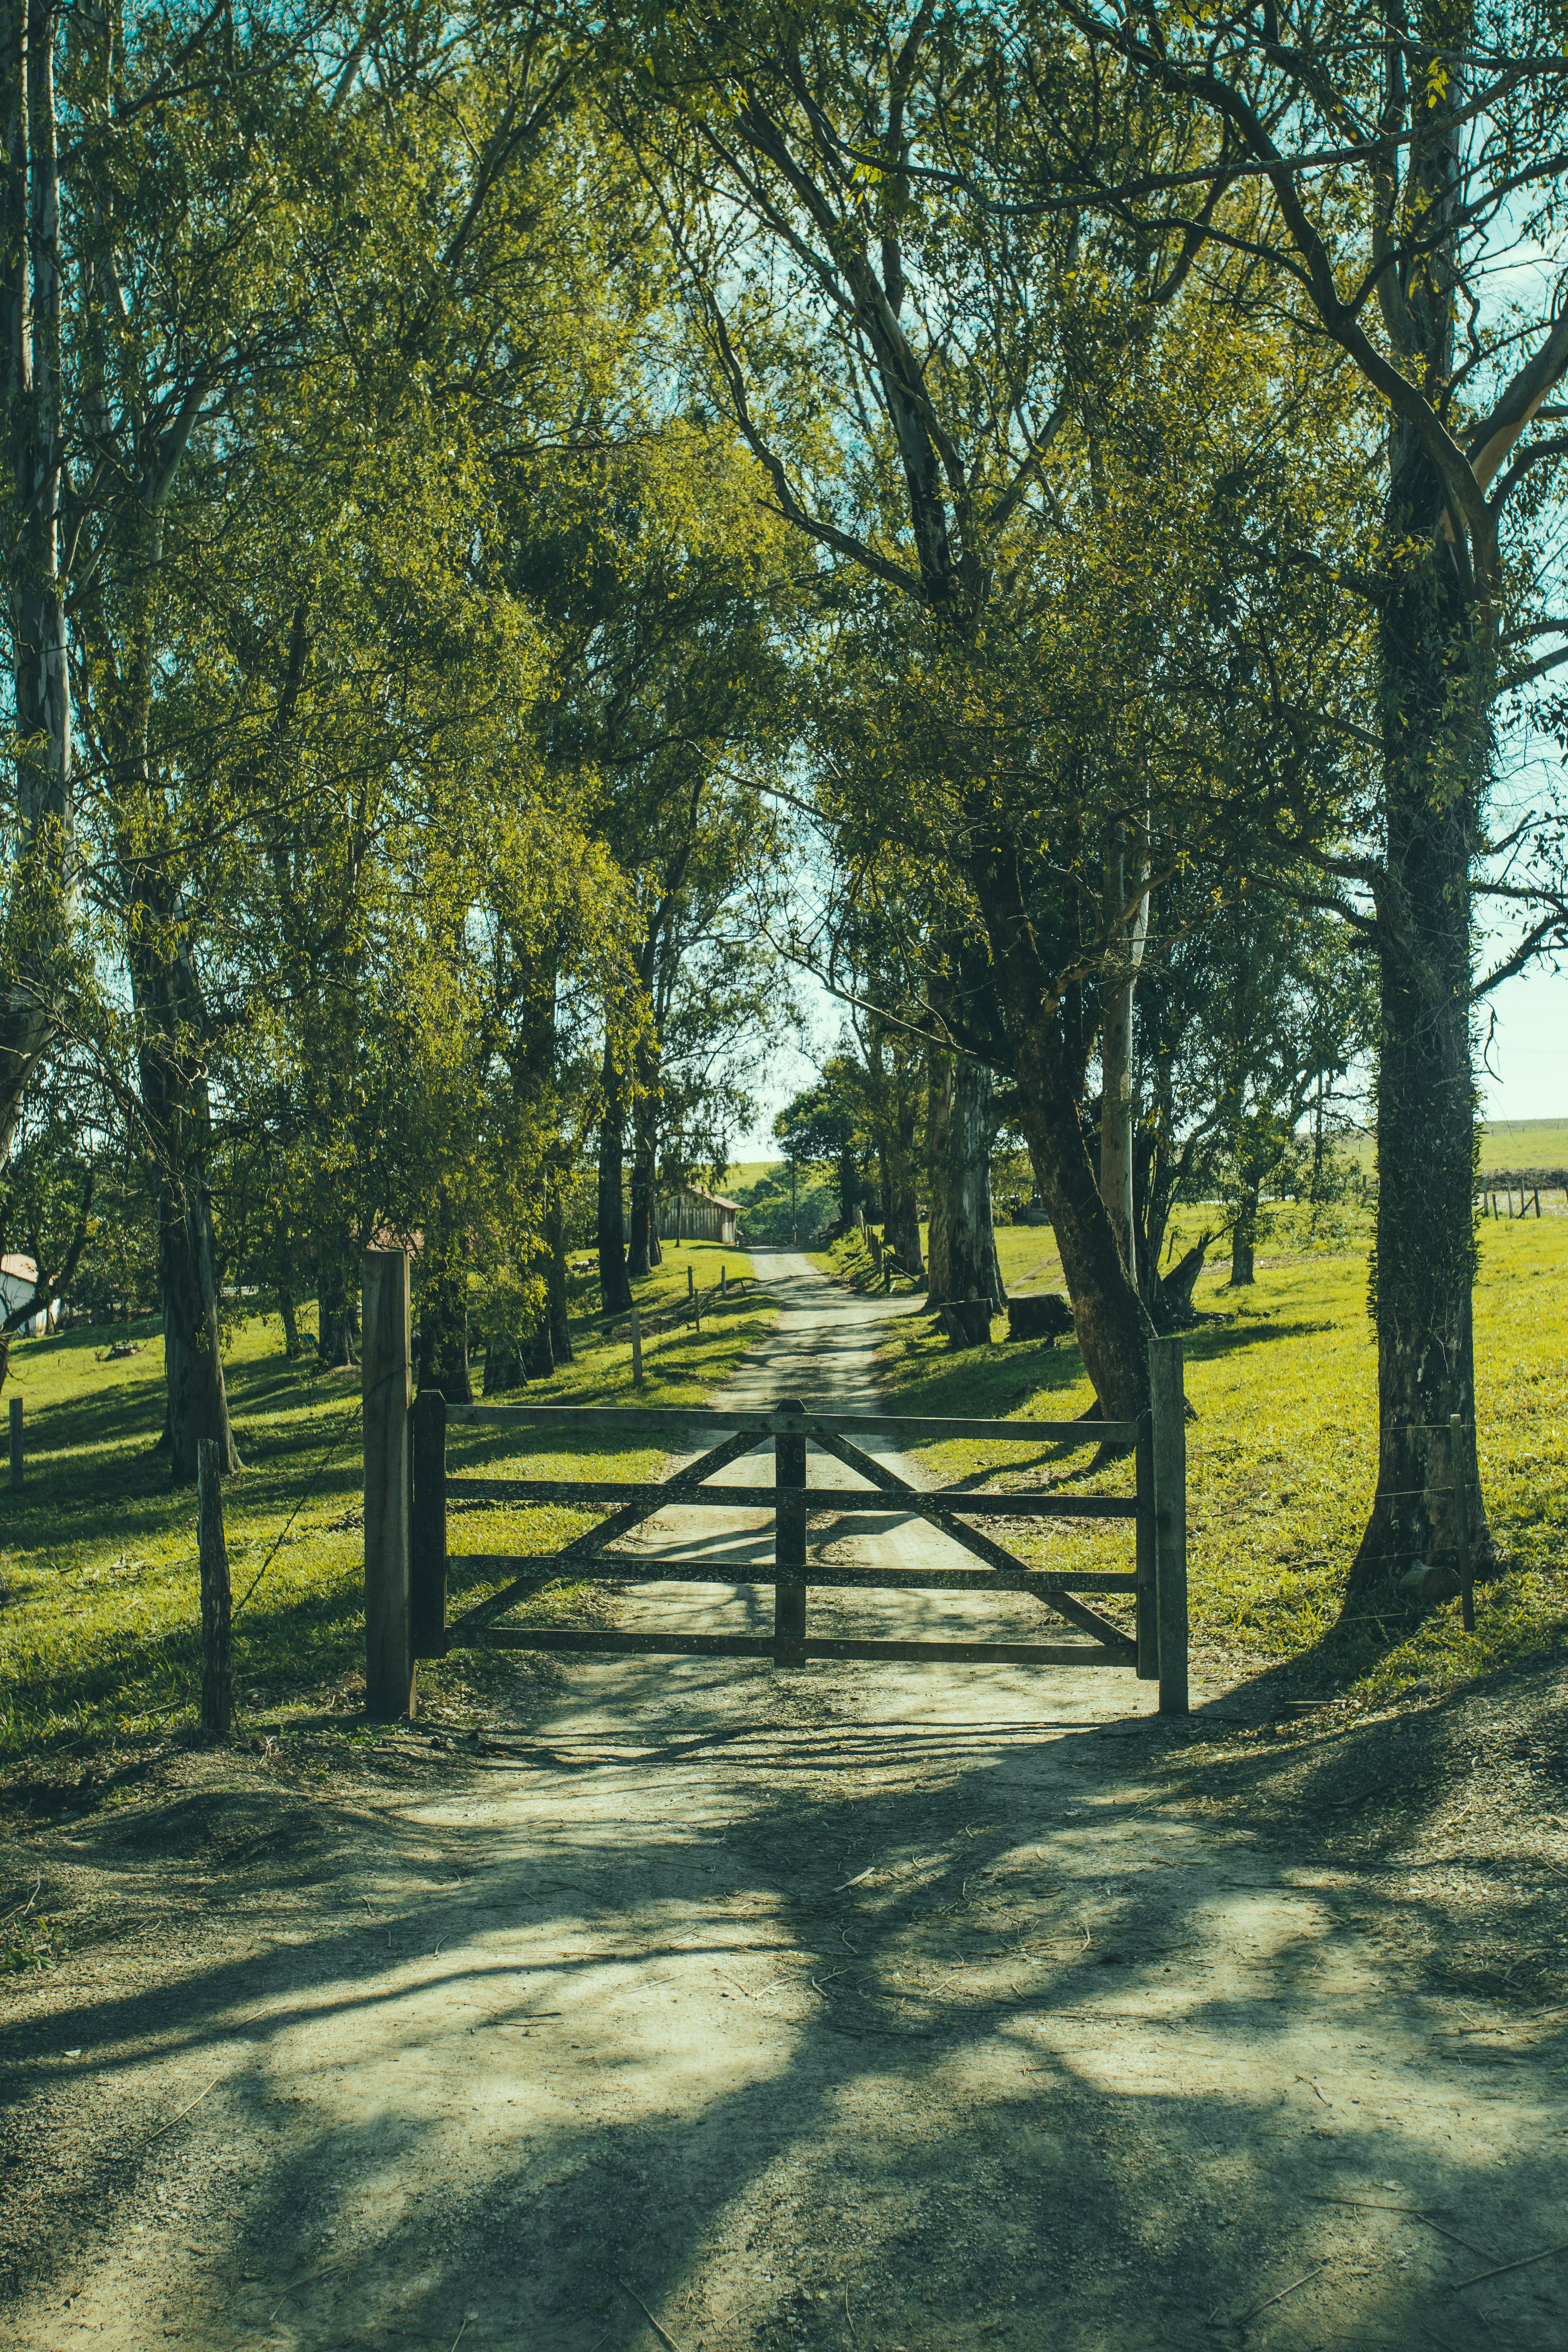 Road With Fence in Between of Green Trees